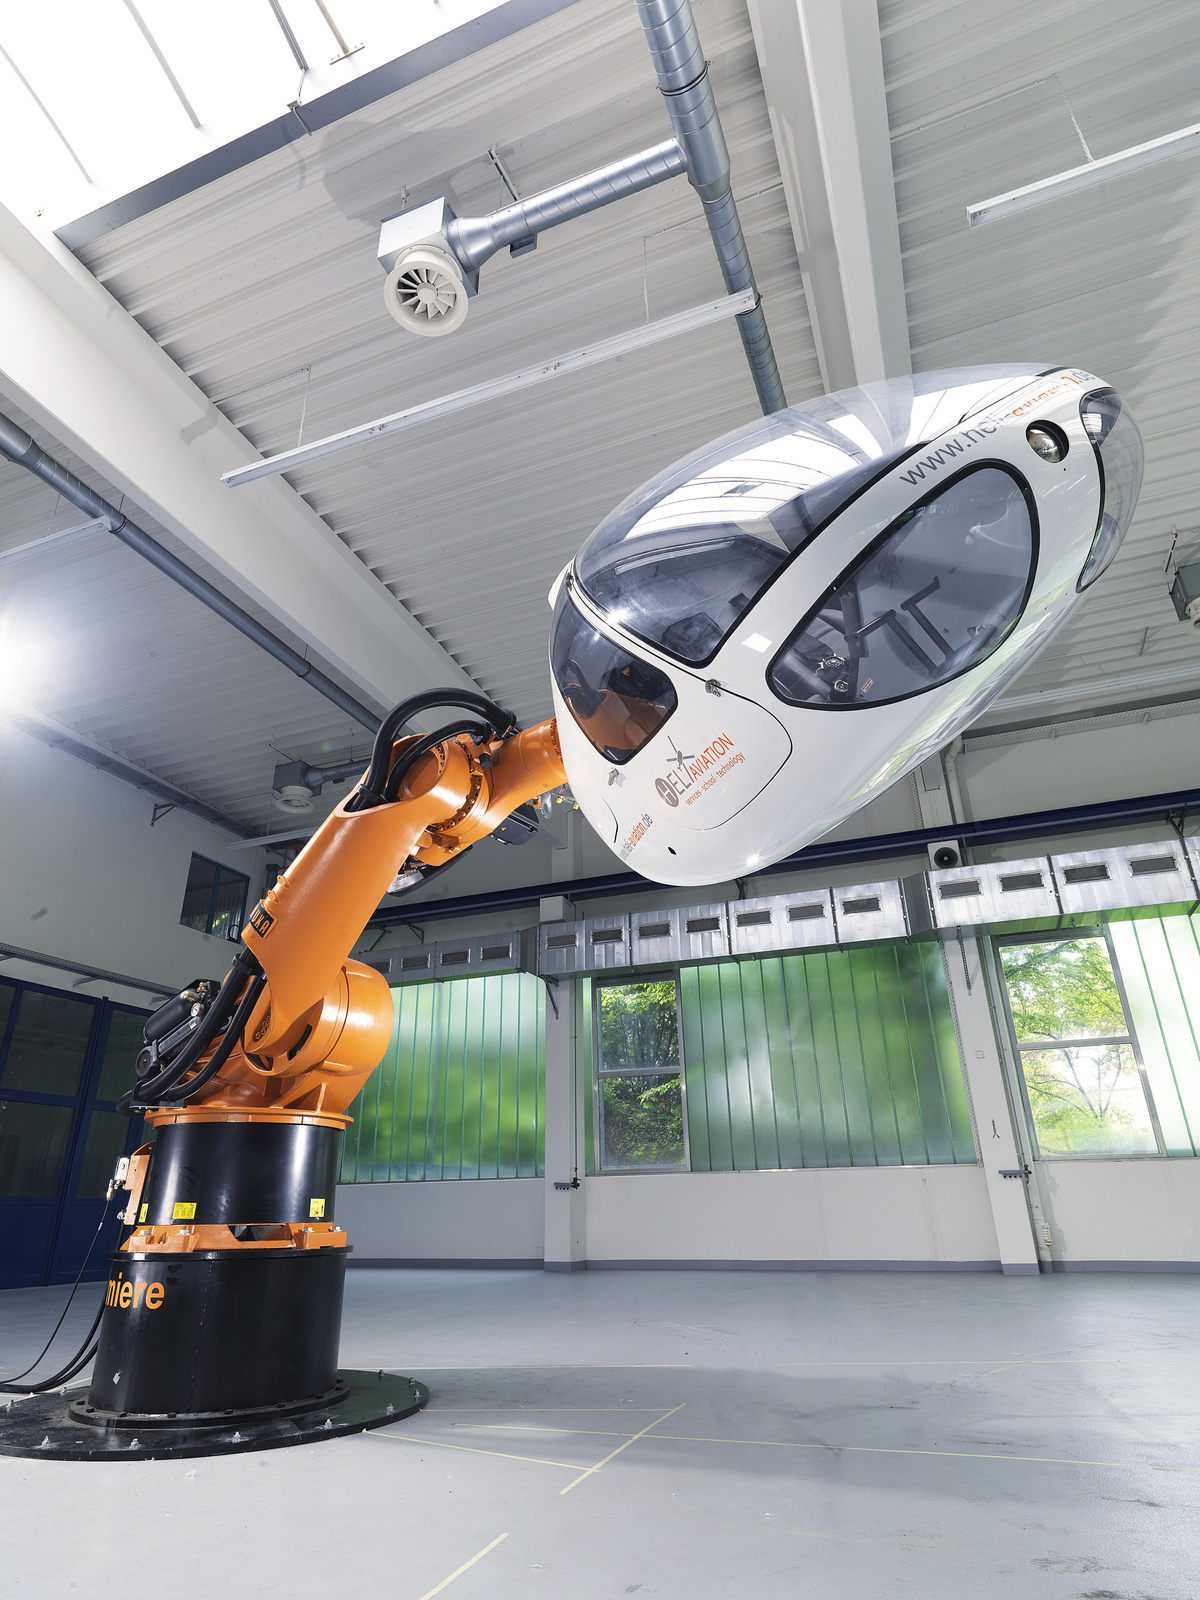 Heli Aviation GmbH together with KUKA Roboter GmbH and the Max Planck Institute for Biological Cybernetics will be presenting a concept study for a new helicopter flight trainer at the ILA. (Photo: Jo Teichmann)